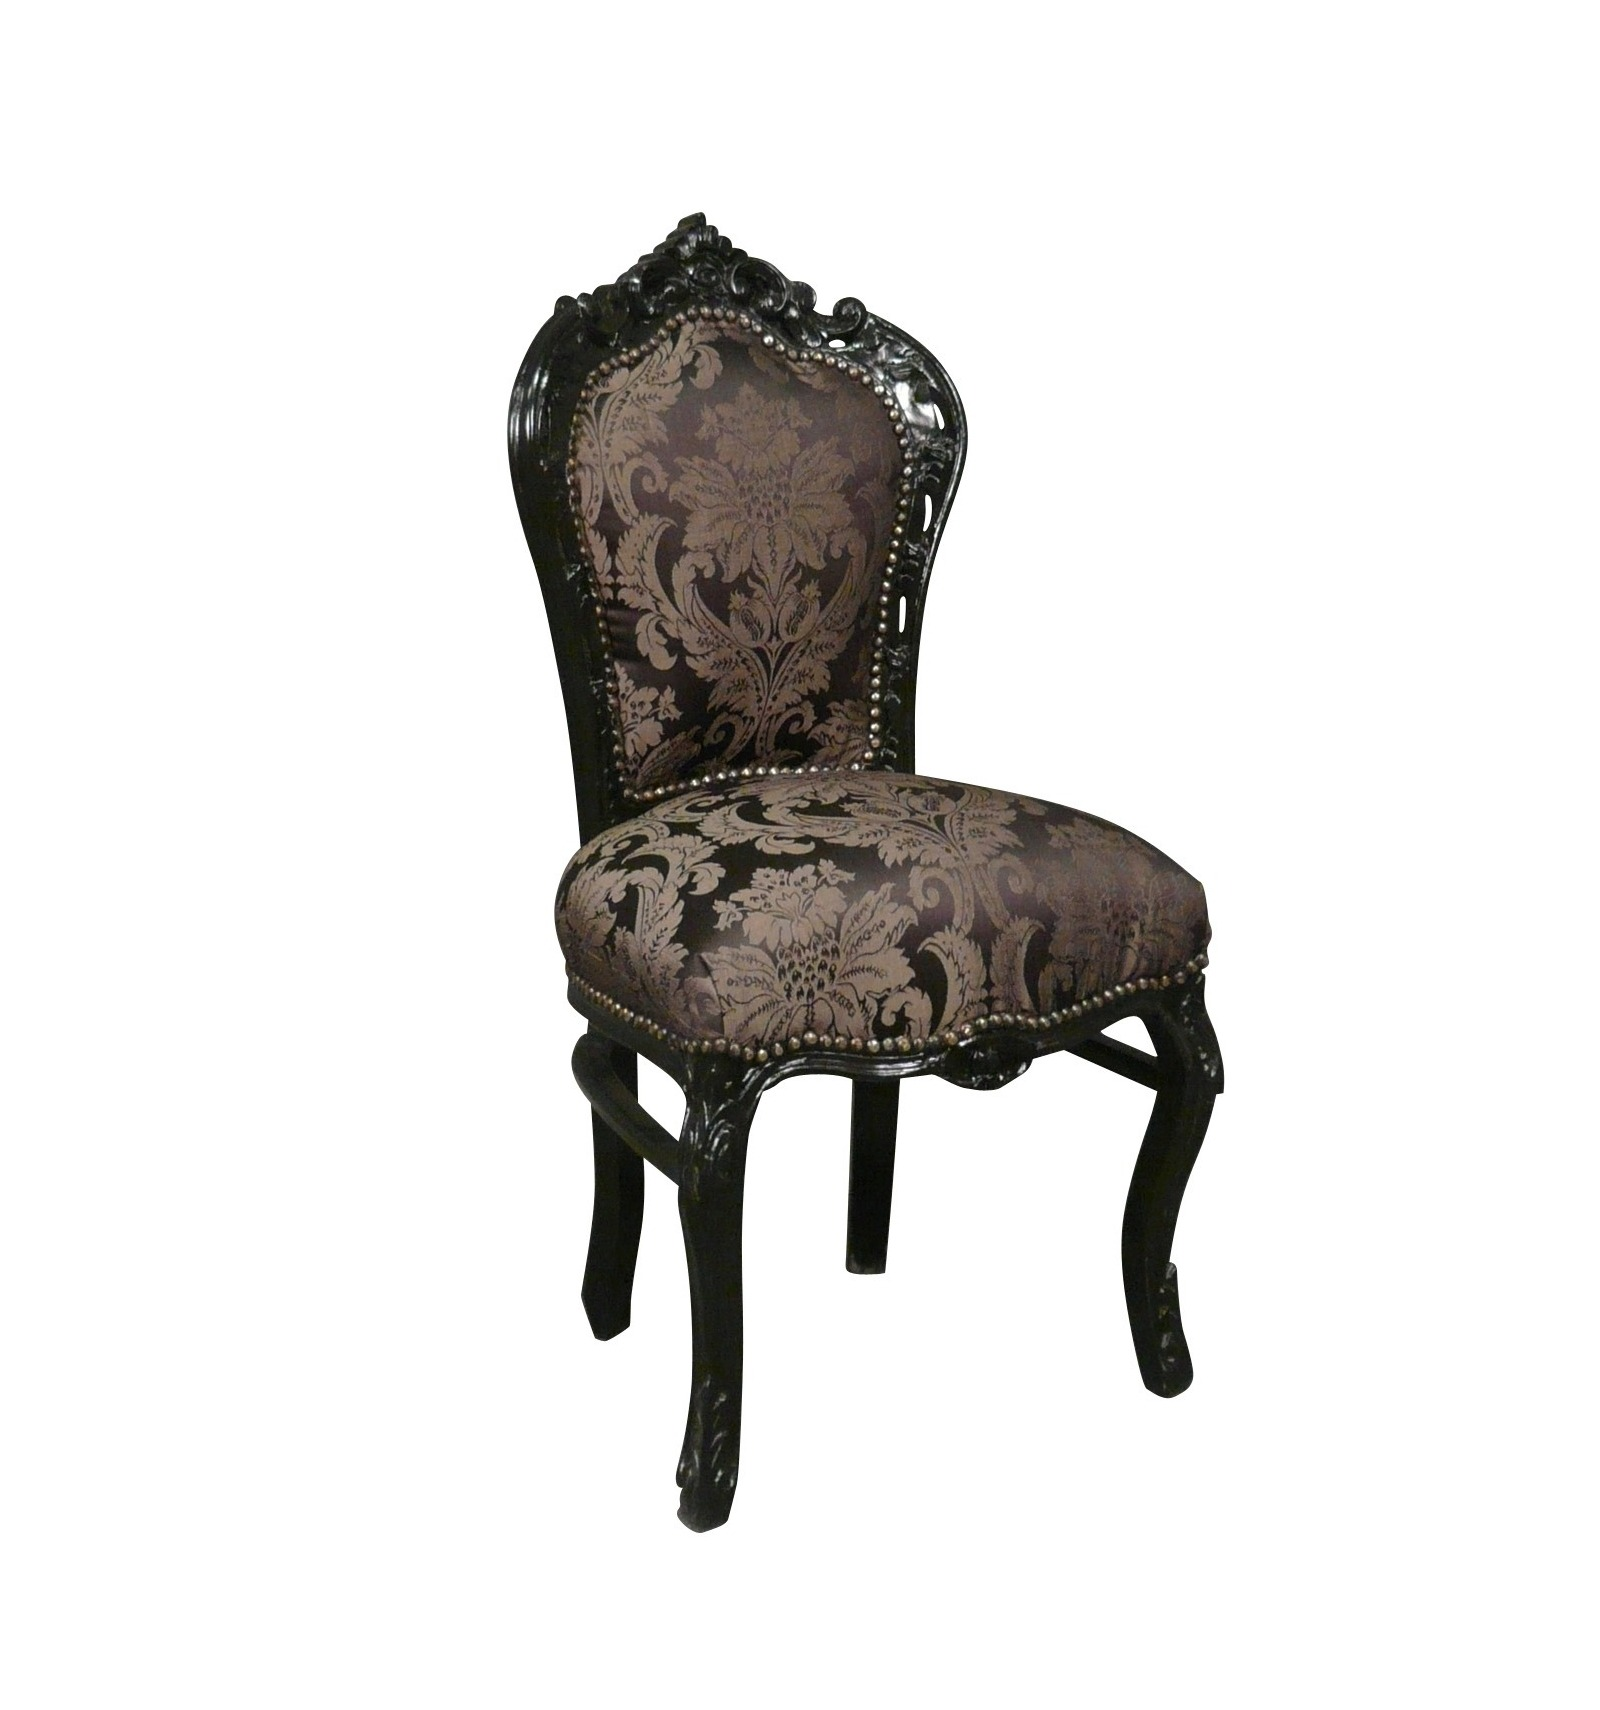 baroque chair black flowers baroque chairs cheap